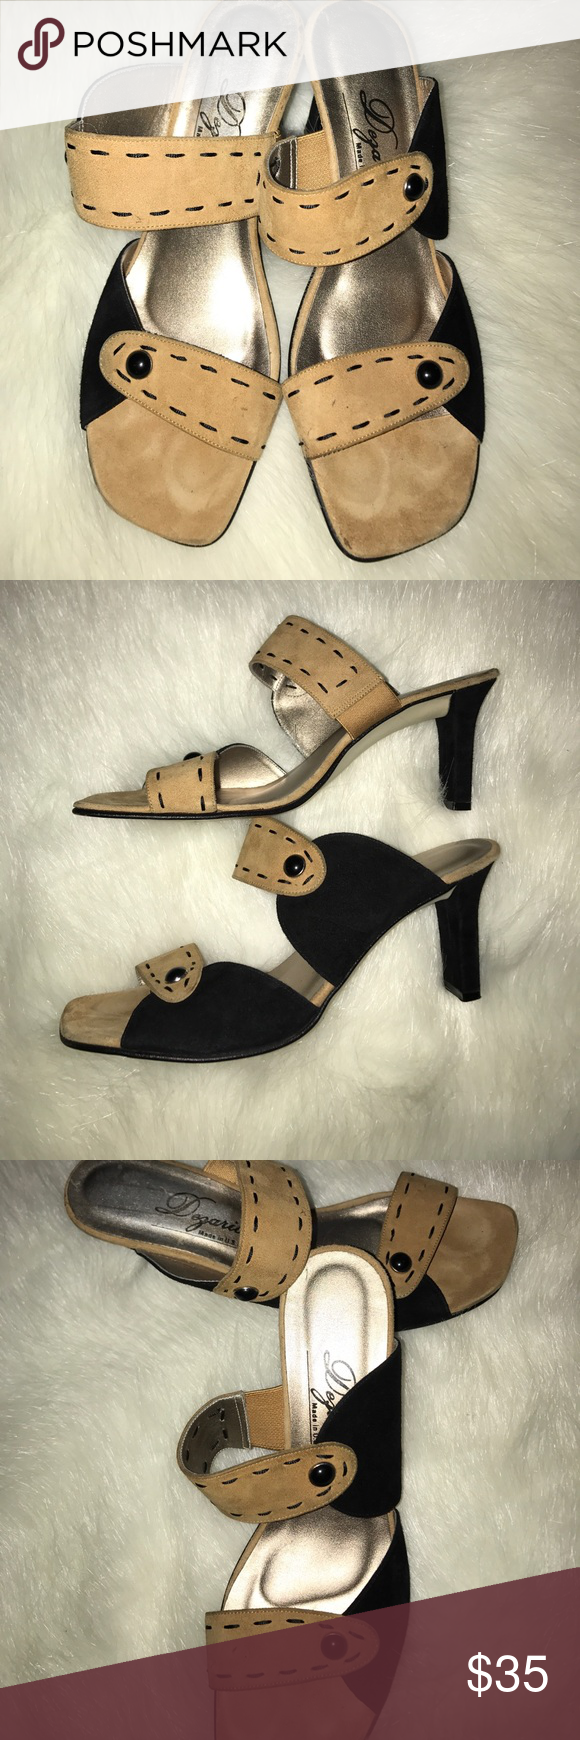 88ffe78c21a Women Dezario Black and Tan Suede Sandals Worn Black and Tan open Toe Suede  Sandals that